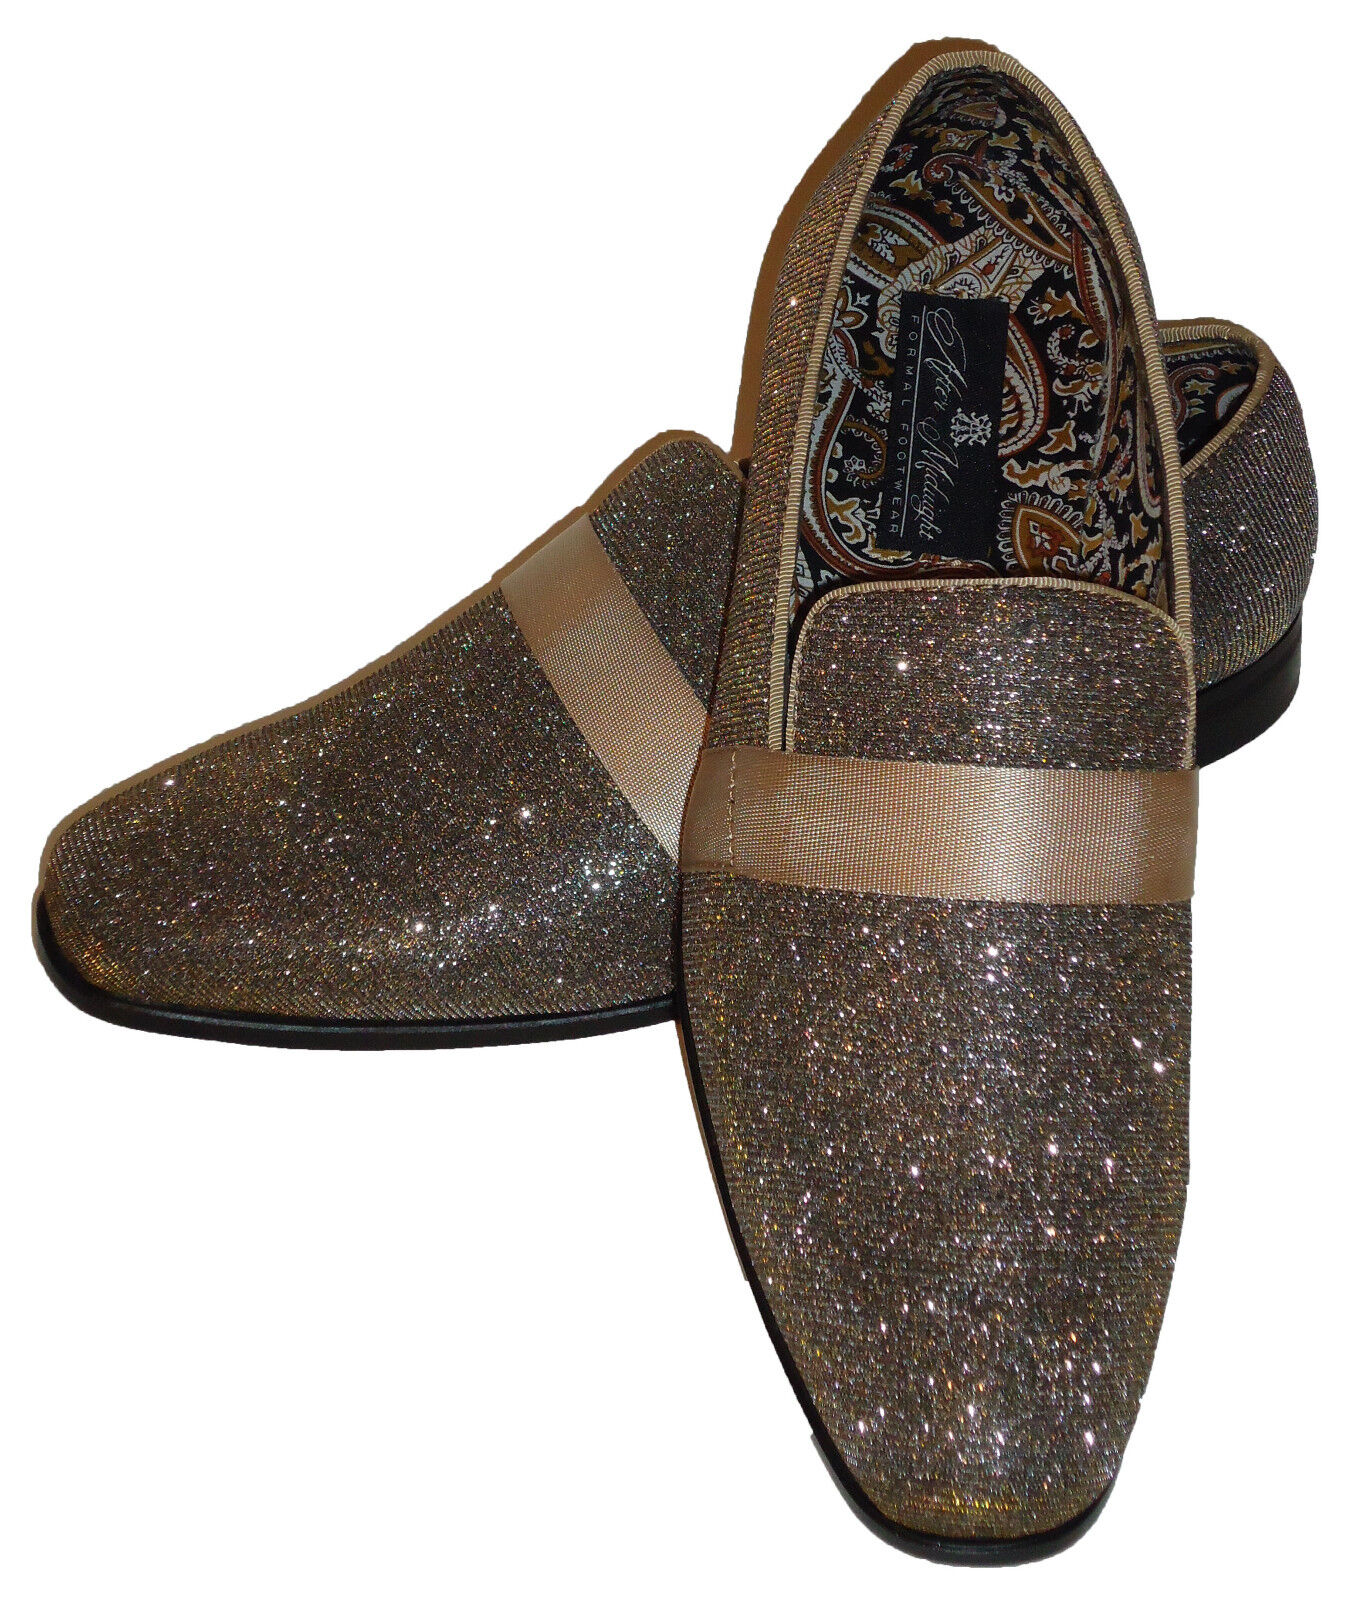 AM 6660 Uomo Formal Occasion Dress Loafers Shoes Superb Gold Glitter Mesh